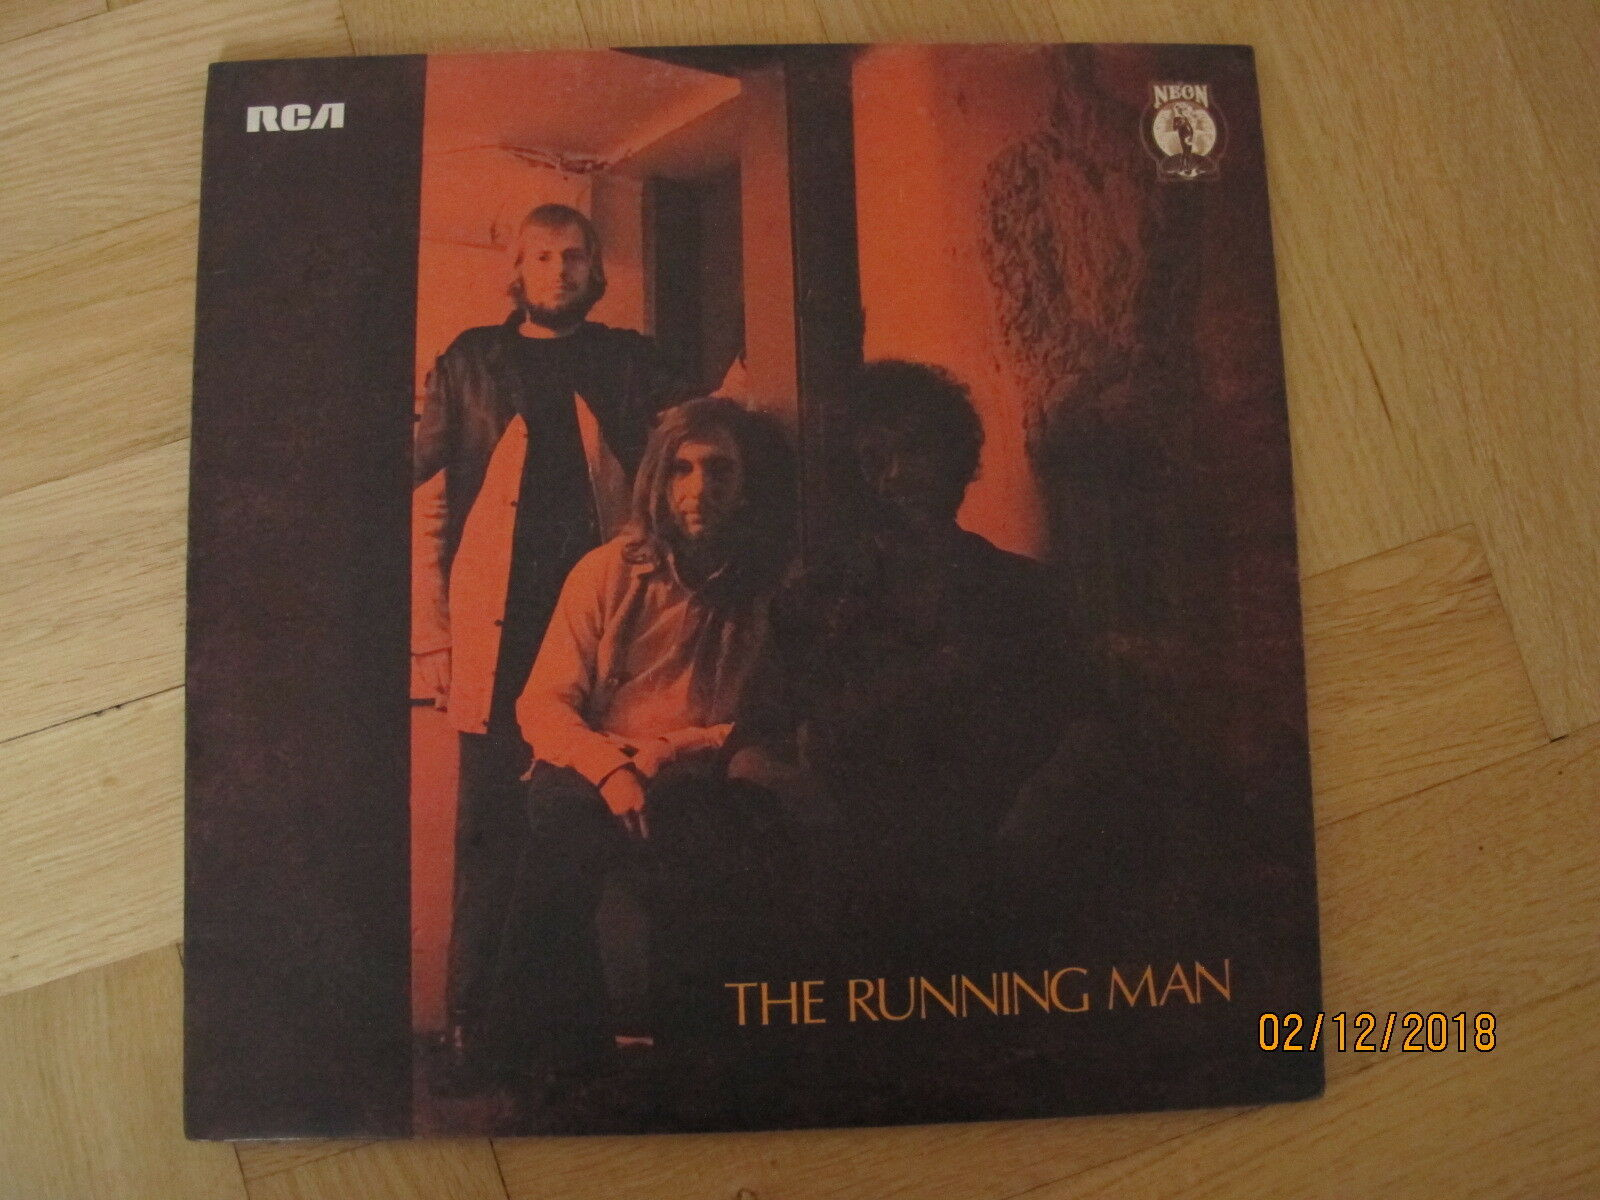 Running Man UK LP 1972 NEON MONSTER HEAVY PSYCH PROG **** AWESOME